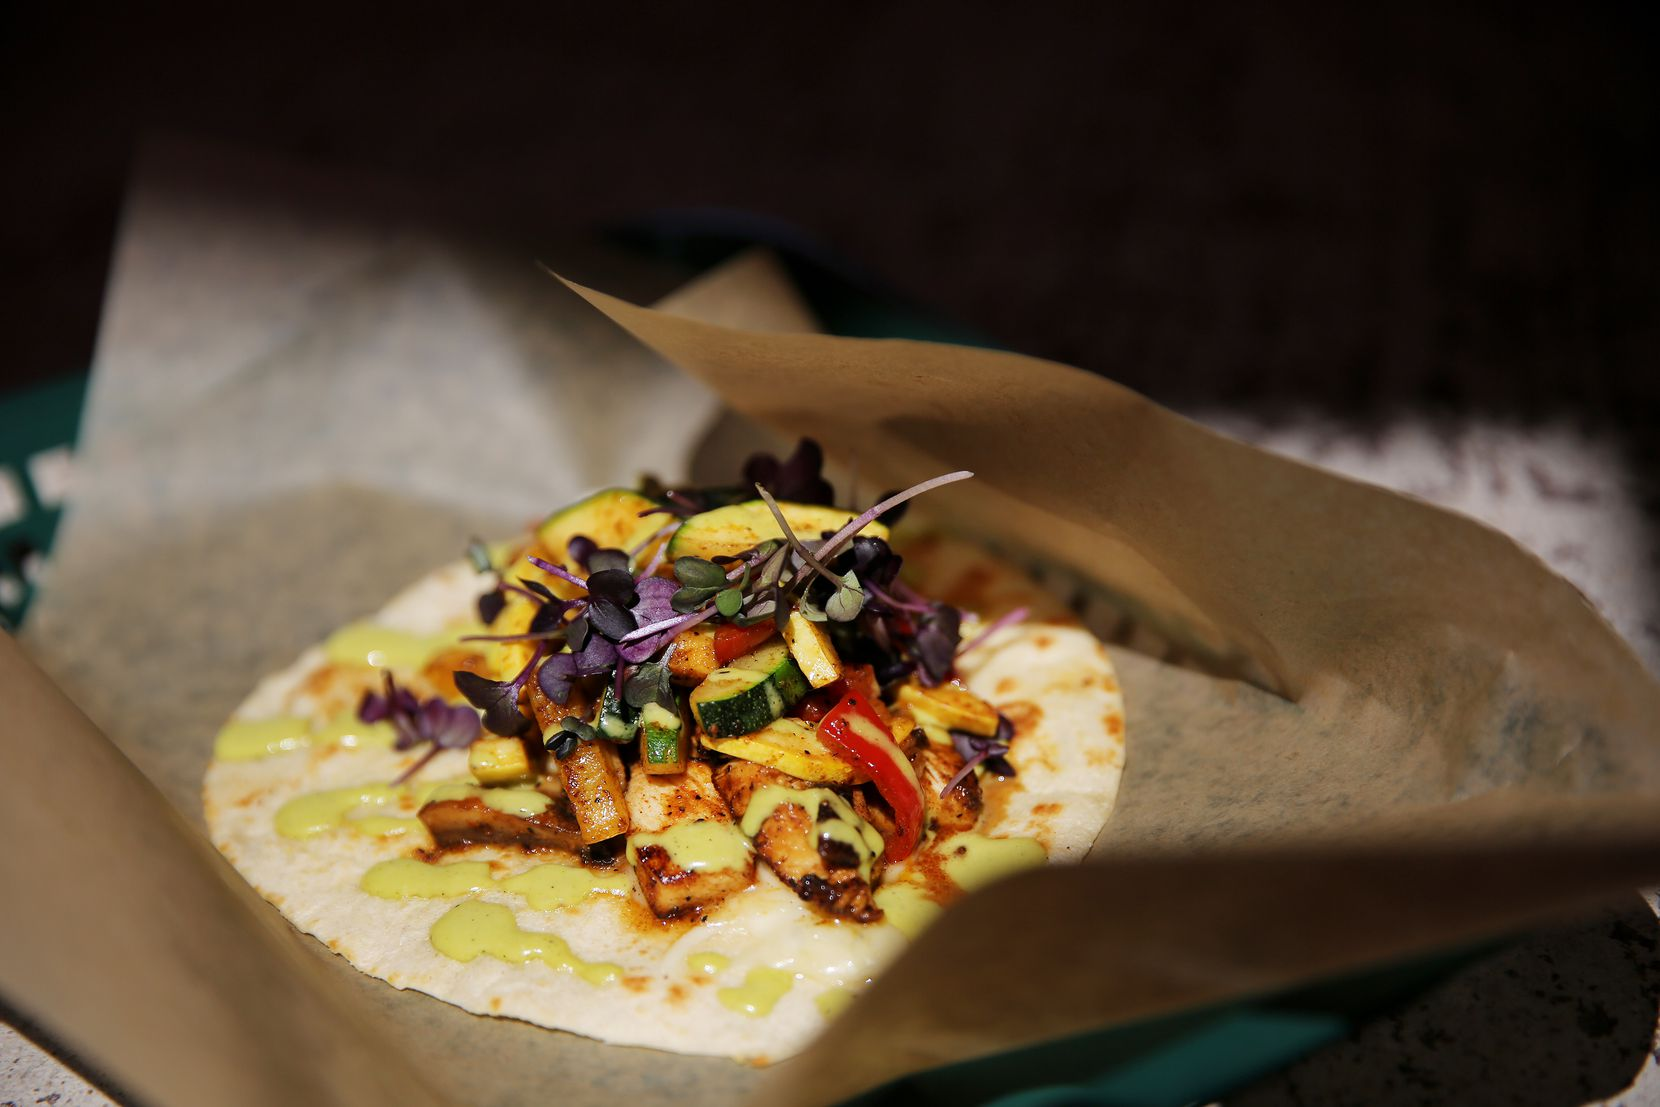 The La Prensa taco from Tacos Mariachi was made with grilled chicken, sauteed vegetables, asadero cheese, jalapeño aioli and microgreens.